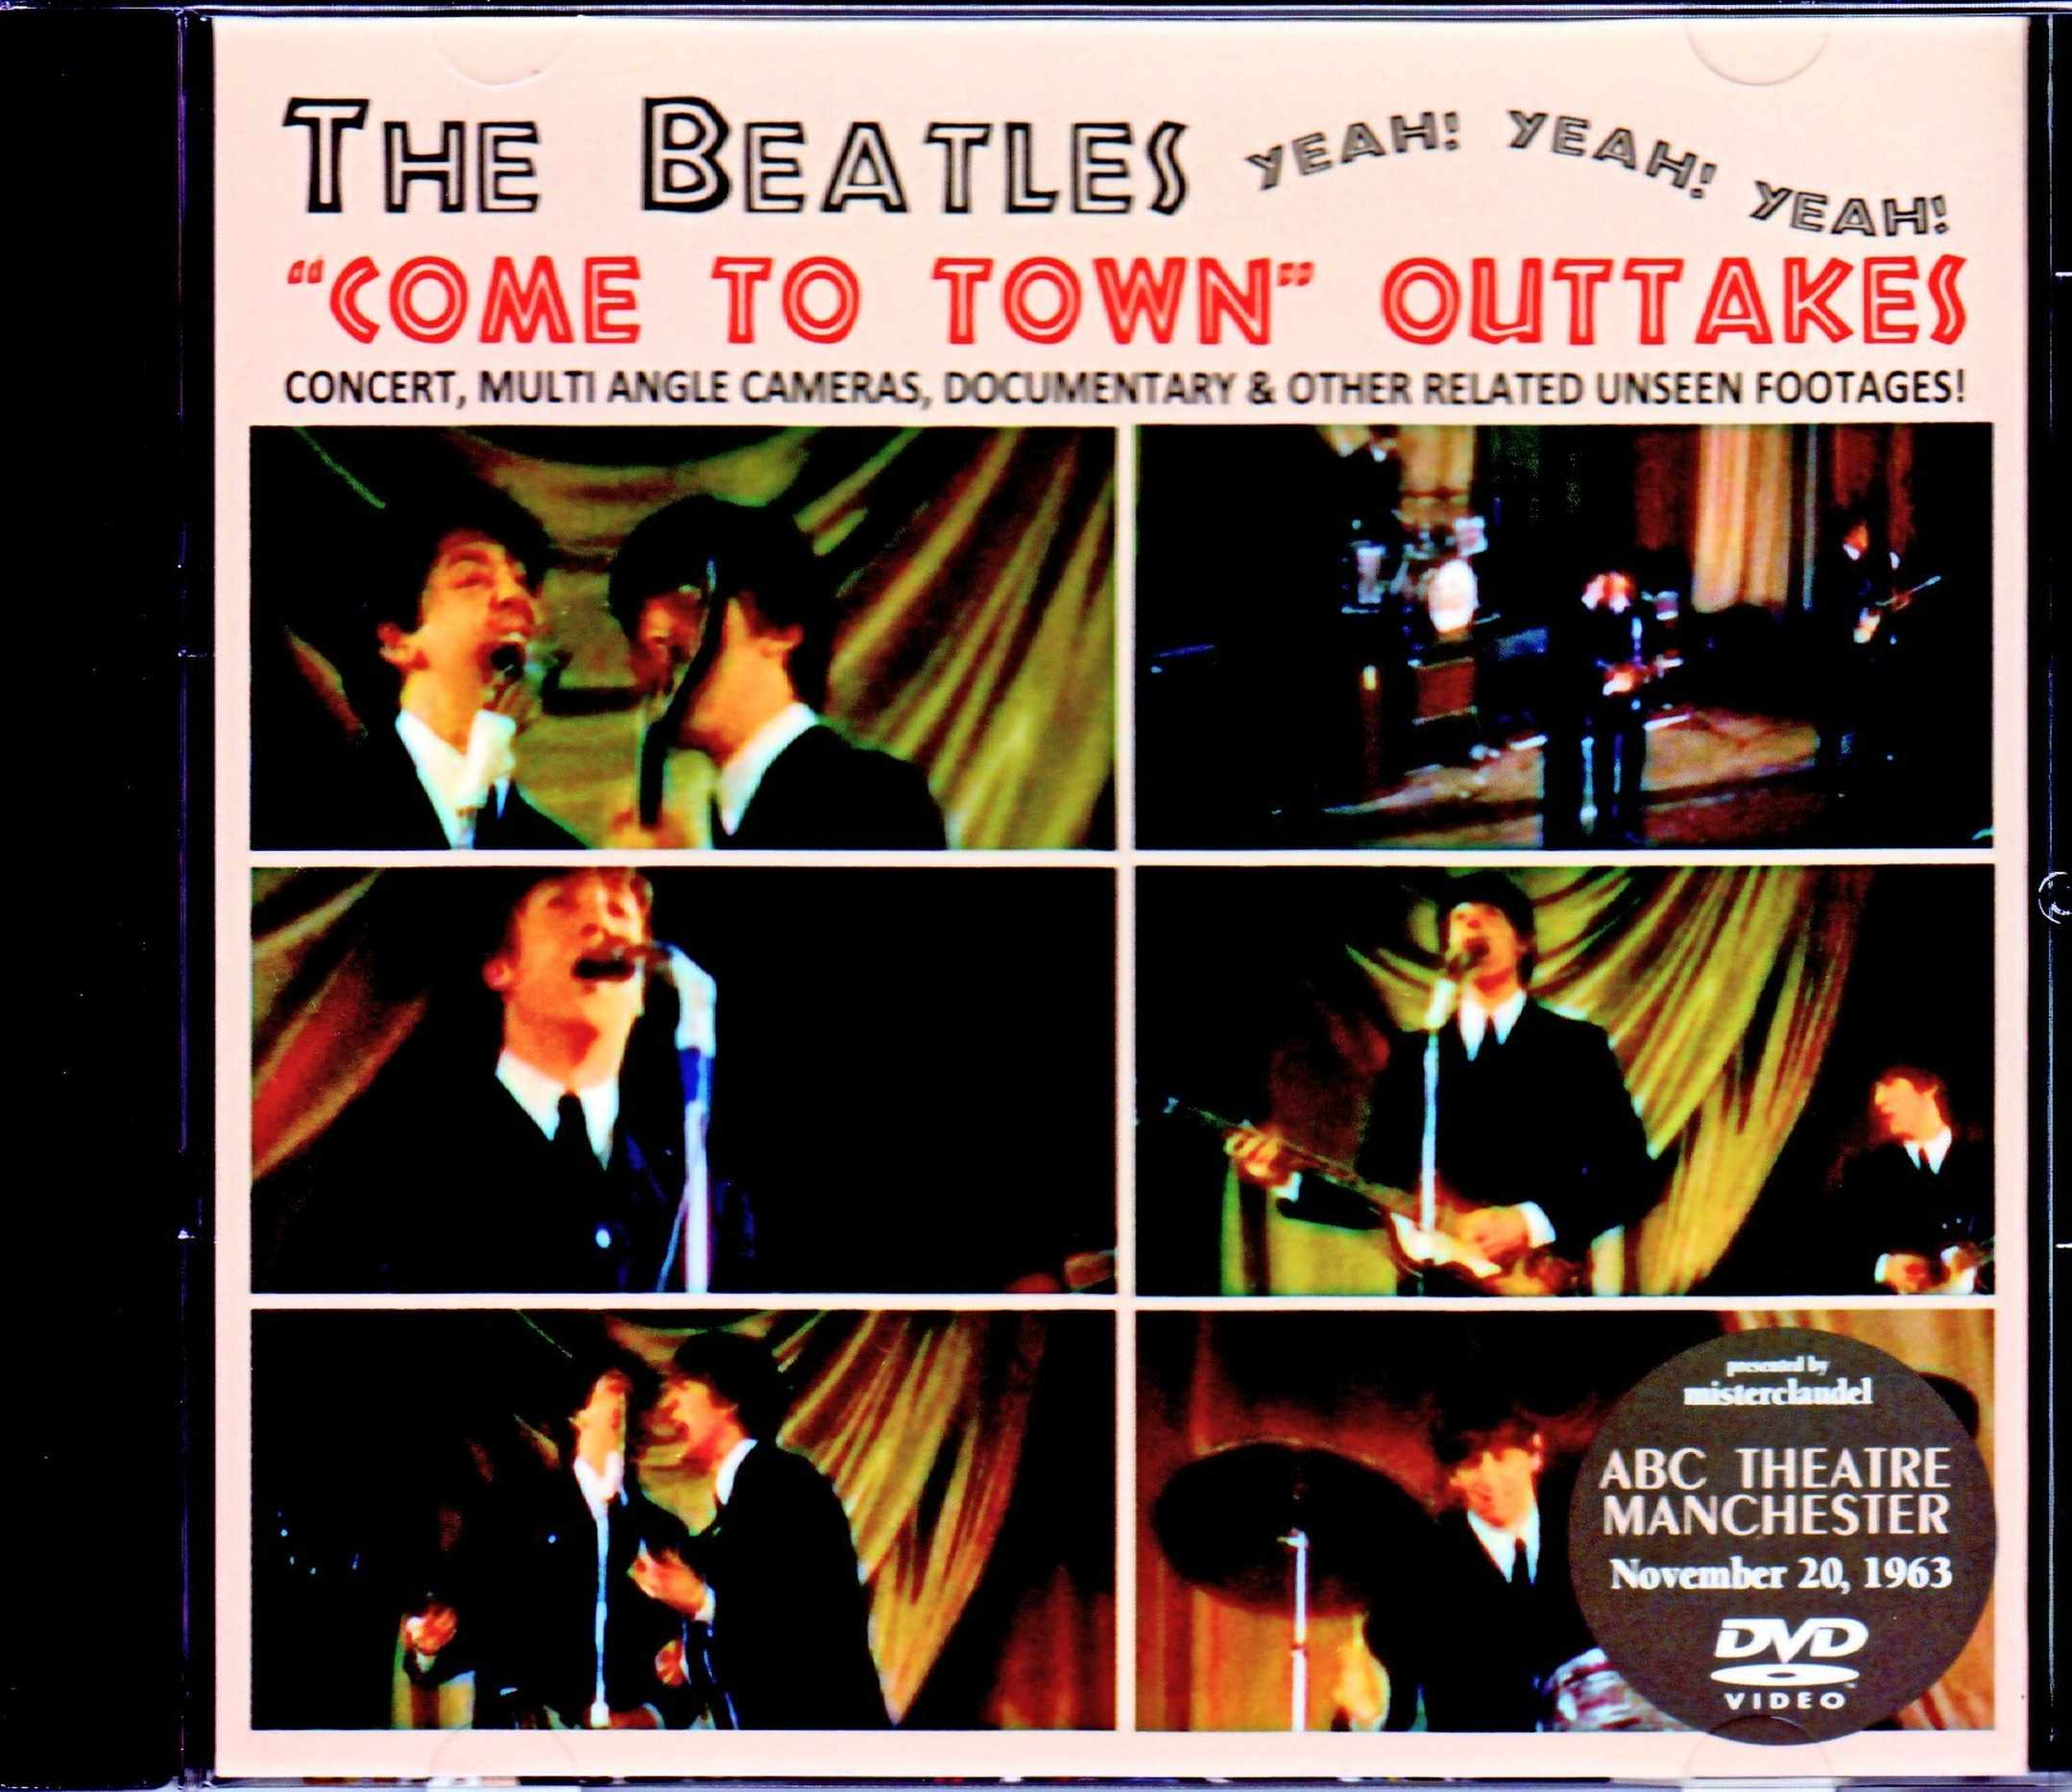 Beatles ビートルズ/UK 1963 Multi Angle Cameras,Documentary & Other